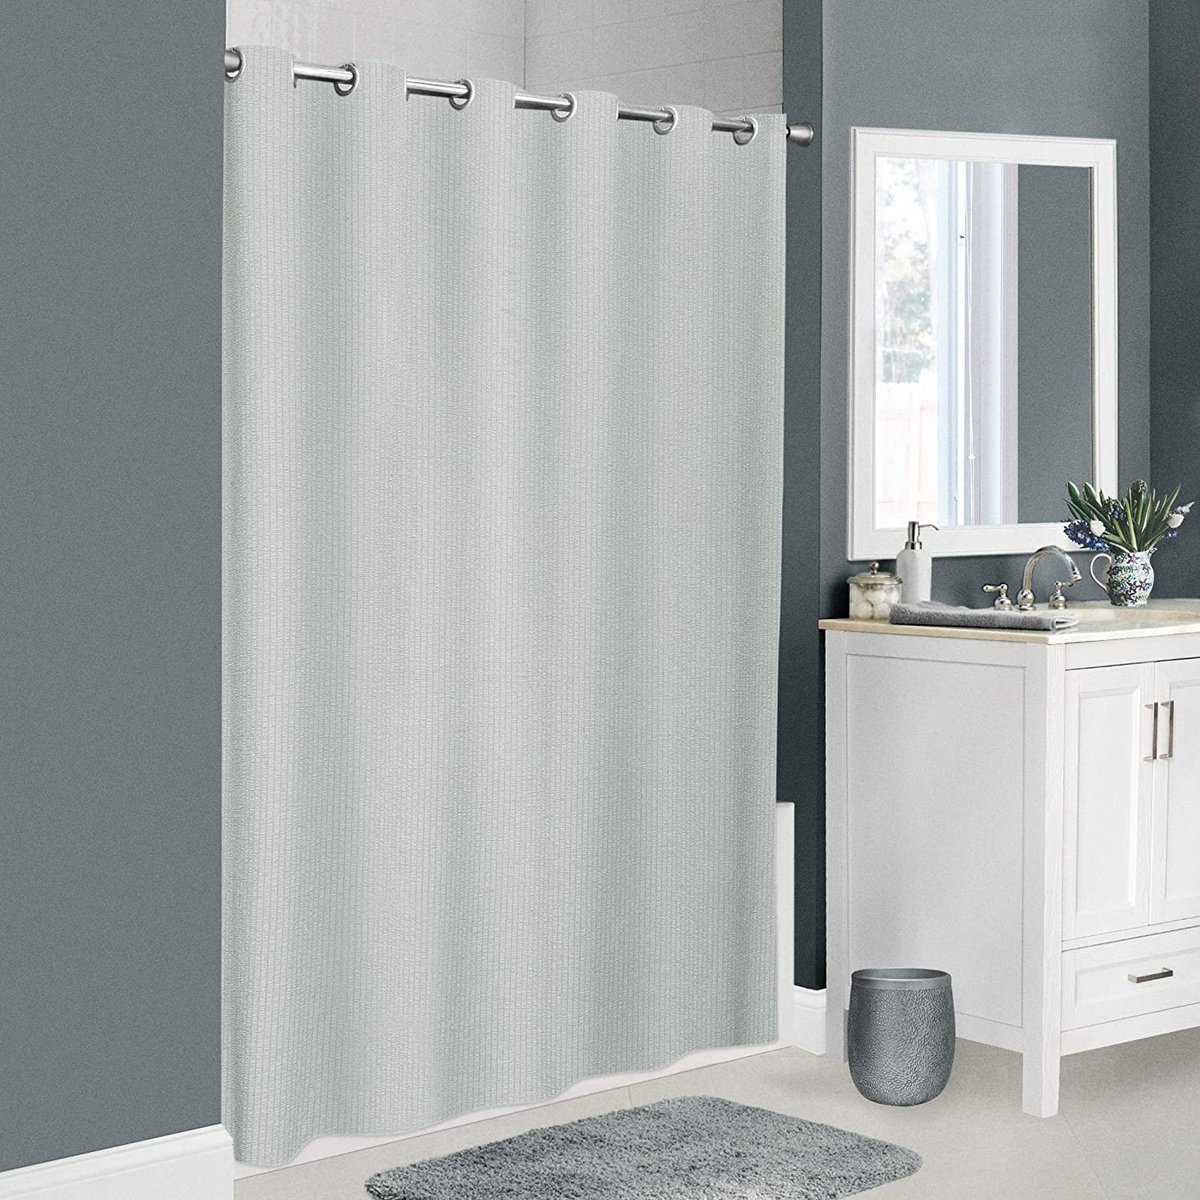 Norwalk Seersucker Fabric Shower Curtain, 70 inches x 74 inches, Grey  Only $7.94!!  2